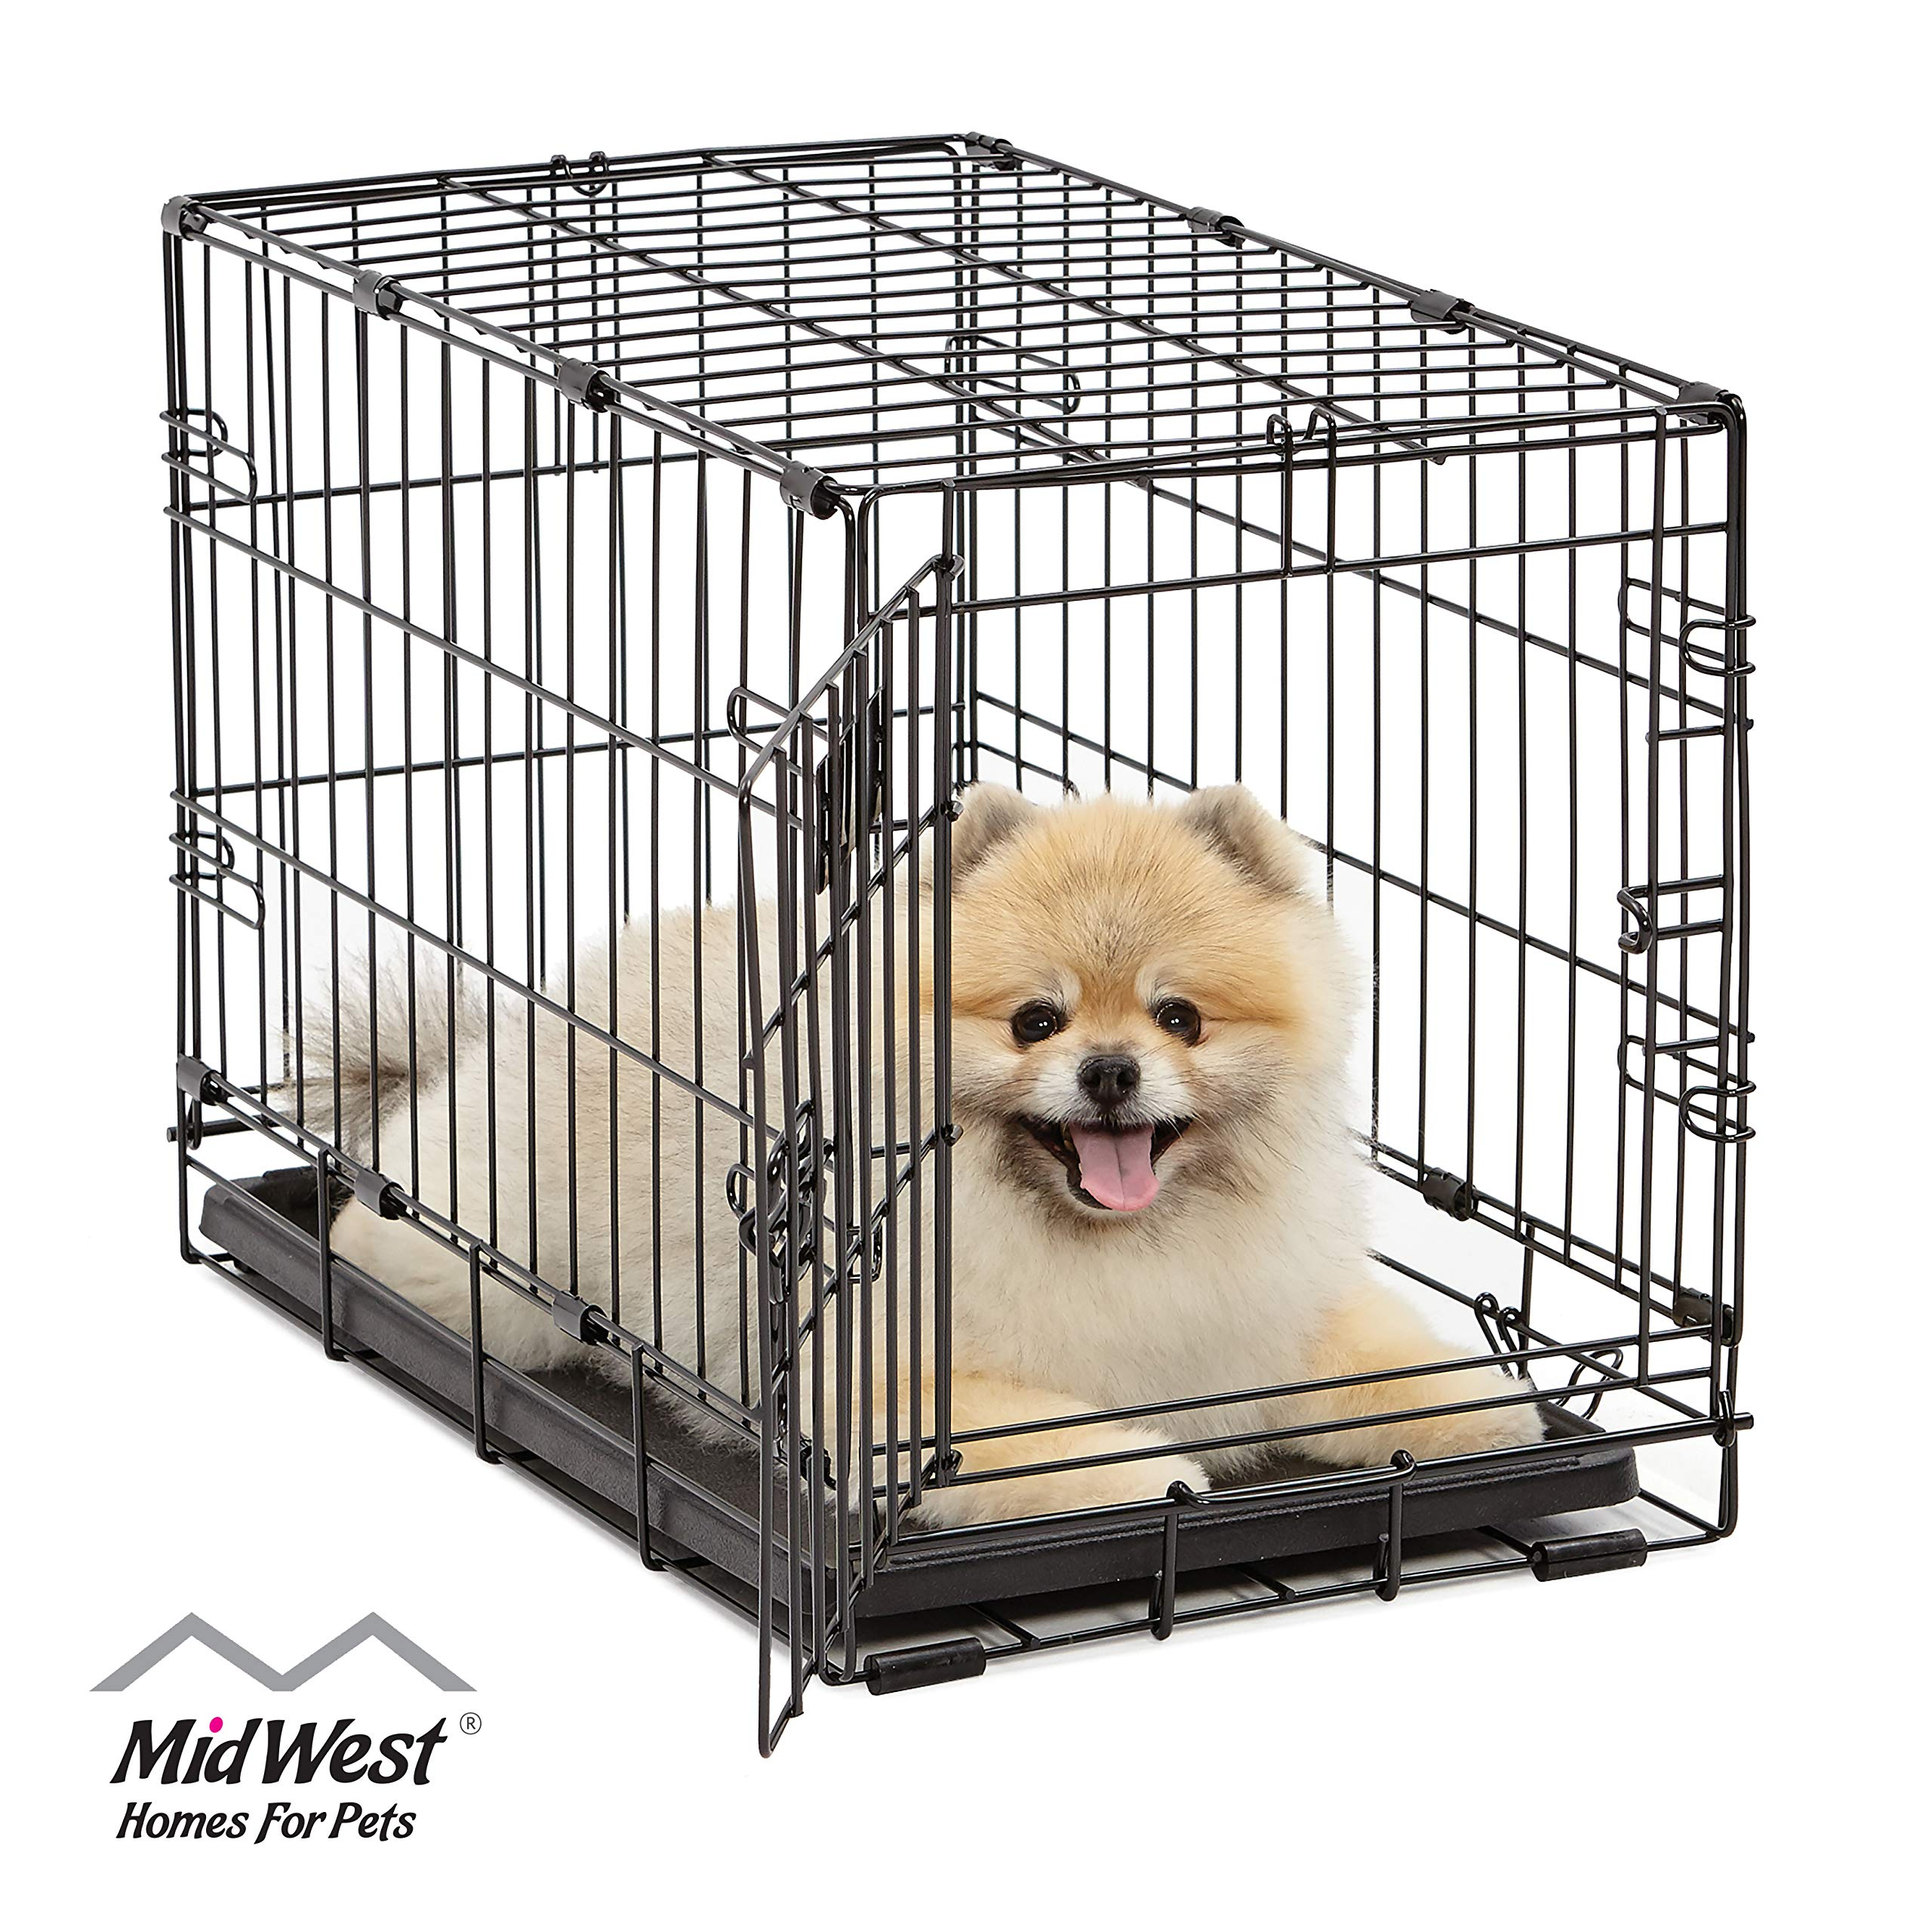 Small Dog Cage iCrate Single Door Portable Dog Crate Small Kennel - 24-inches